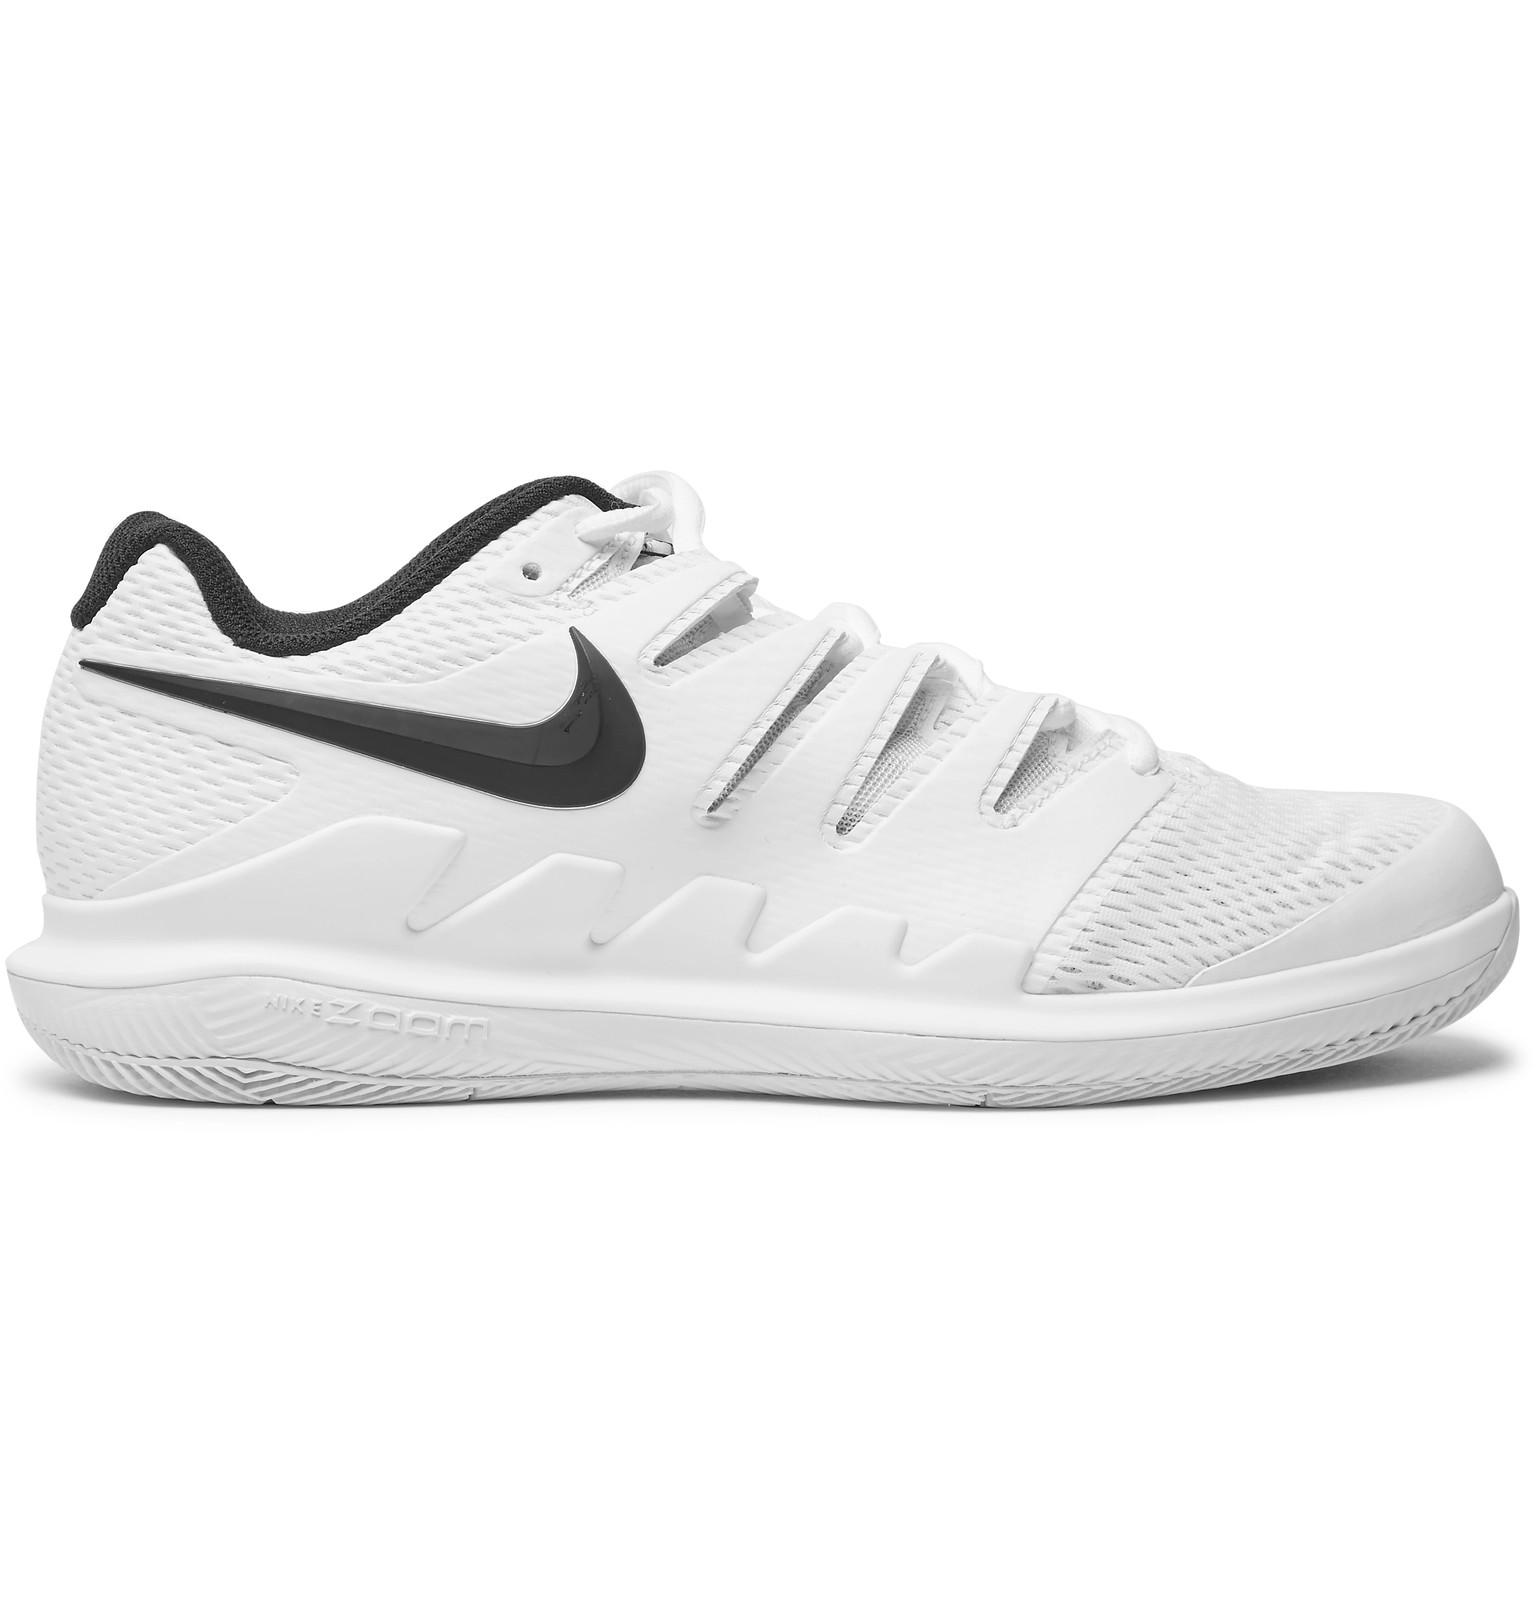 Air Zoom Vapor X Rubber And Mesh Sneakers Nike SvgH4A